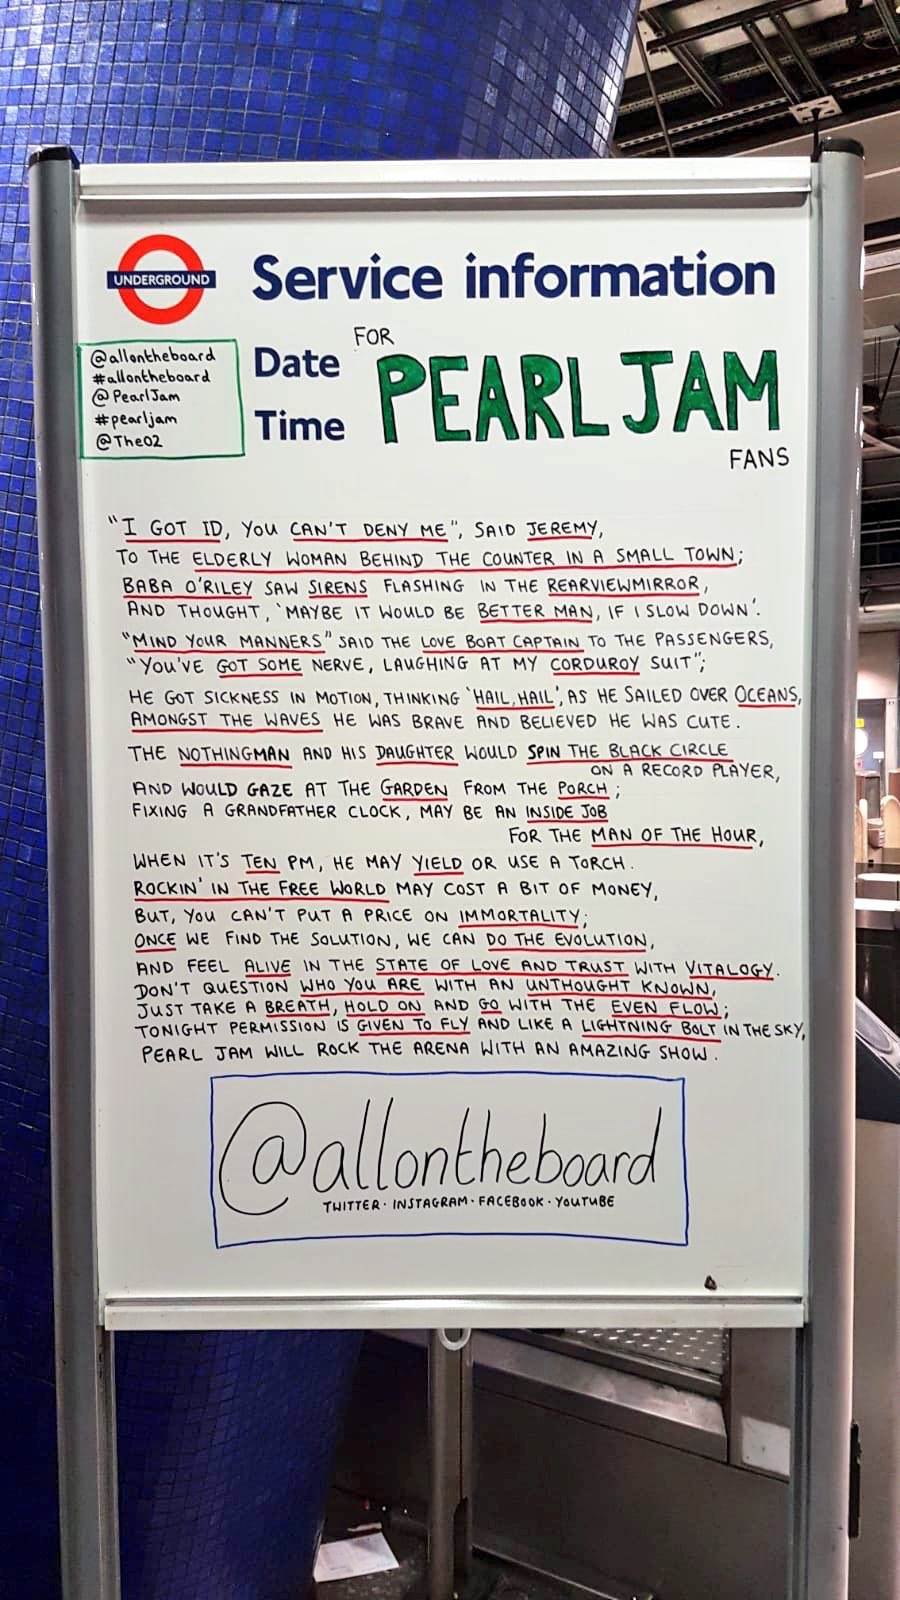 For @PearlJam and their fans poem by @allontheboard Tonight they will be rocking @TheO2 in #London. It's so good to have them back 🤘#PearlJam #PJLIVE2018 #EddieVedder #pearljamlive @MikeMcCreadyPJ @JeffAmentsArmy @SGossard #MattCameron @PearlJamOnLine #TheO2 #allontheboard https://t.co/l2s4mq8ixl